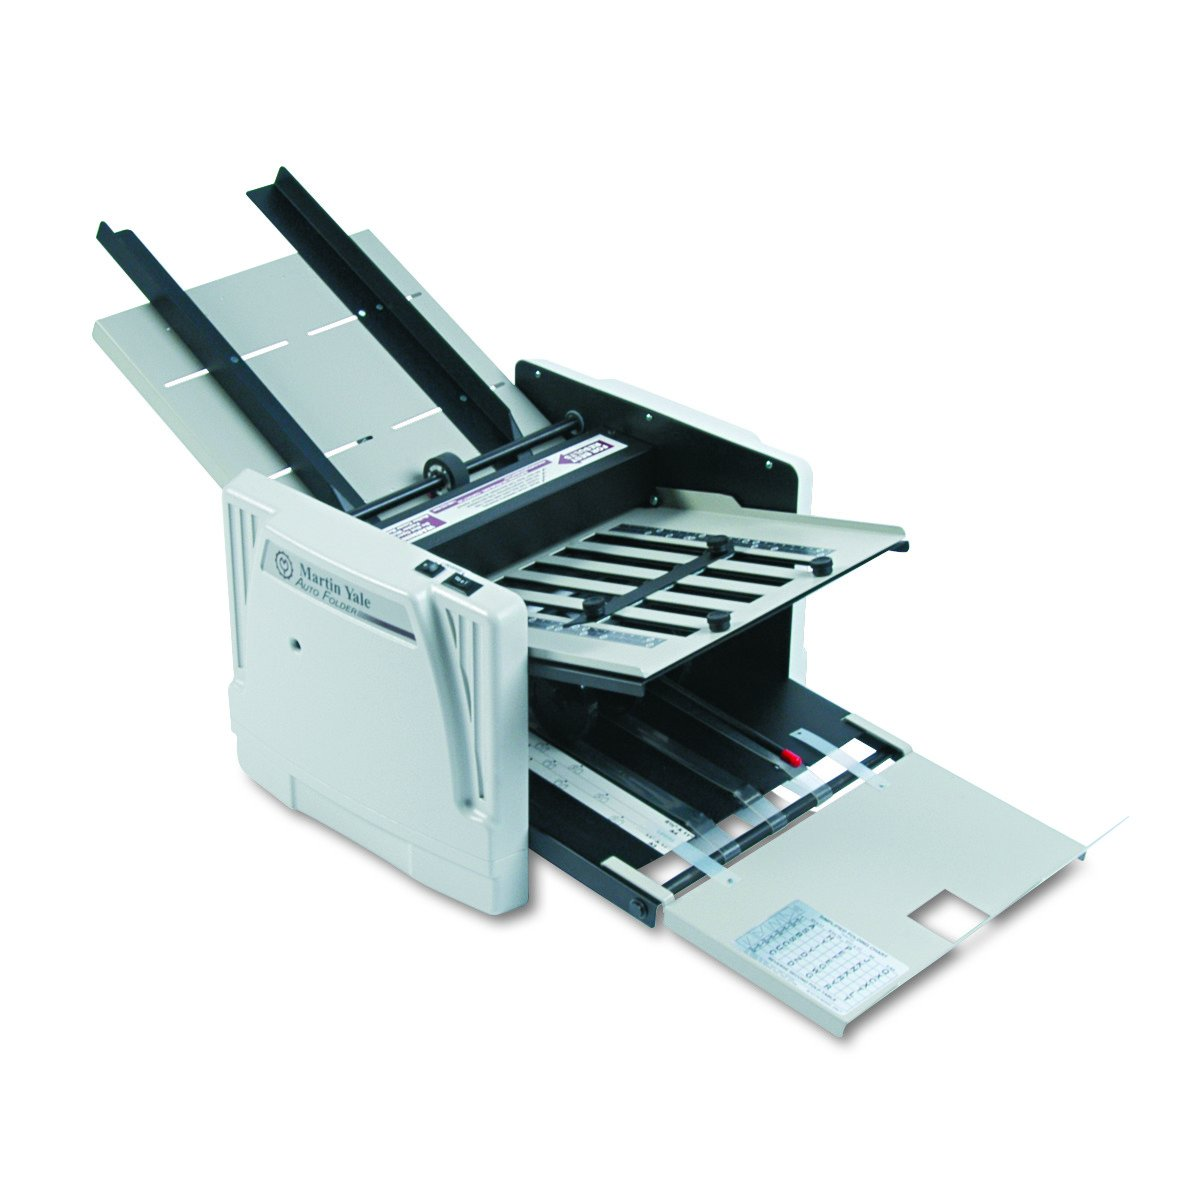 Amazon.com : Martin Yale Model 1217A Medium-Duty AutoFolder for 11 x 17  Inches Paper, Grey (PRE1217A) : Paper Folding Machines : Office Products